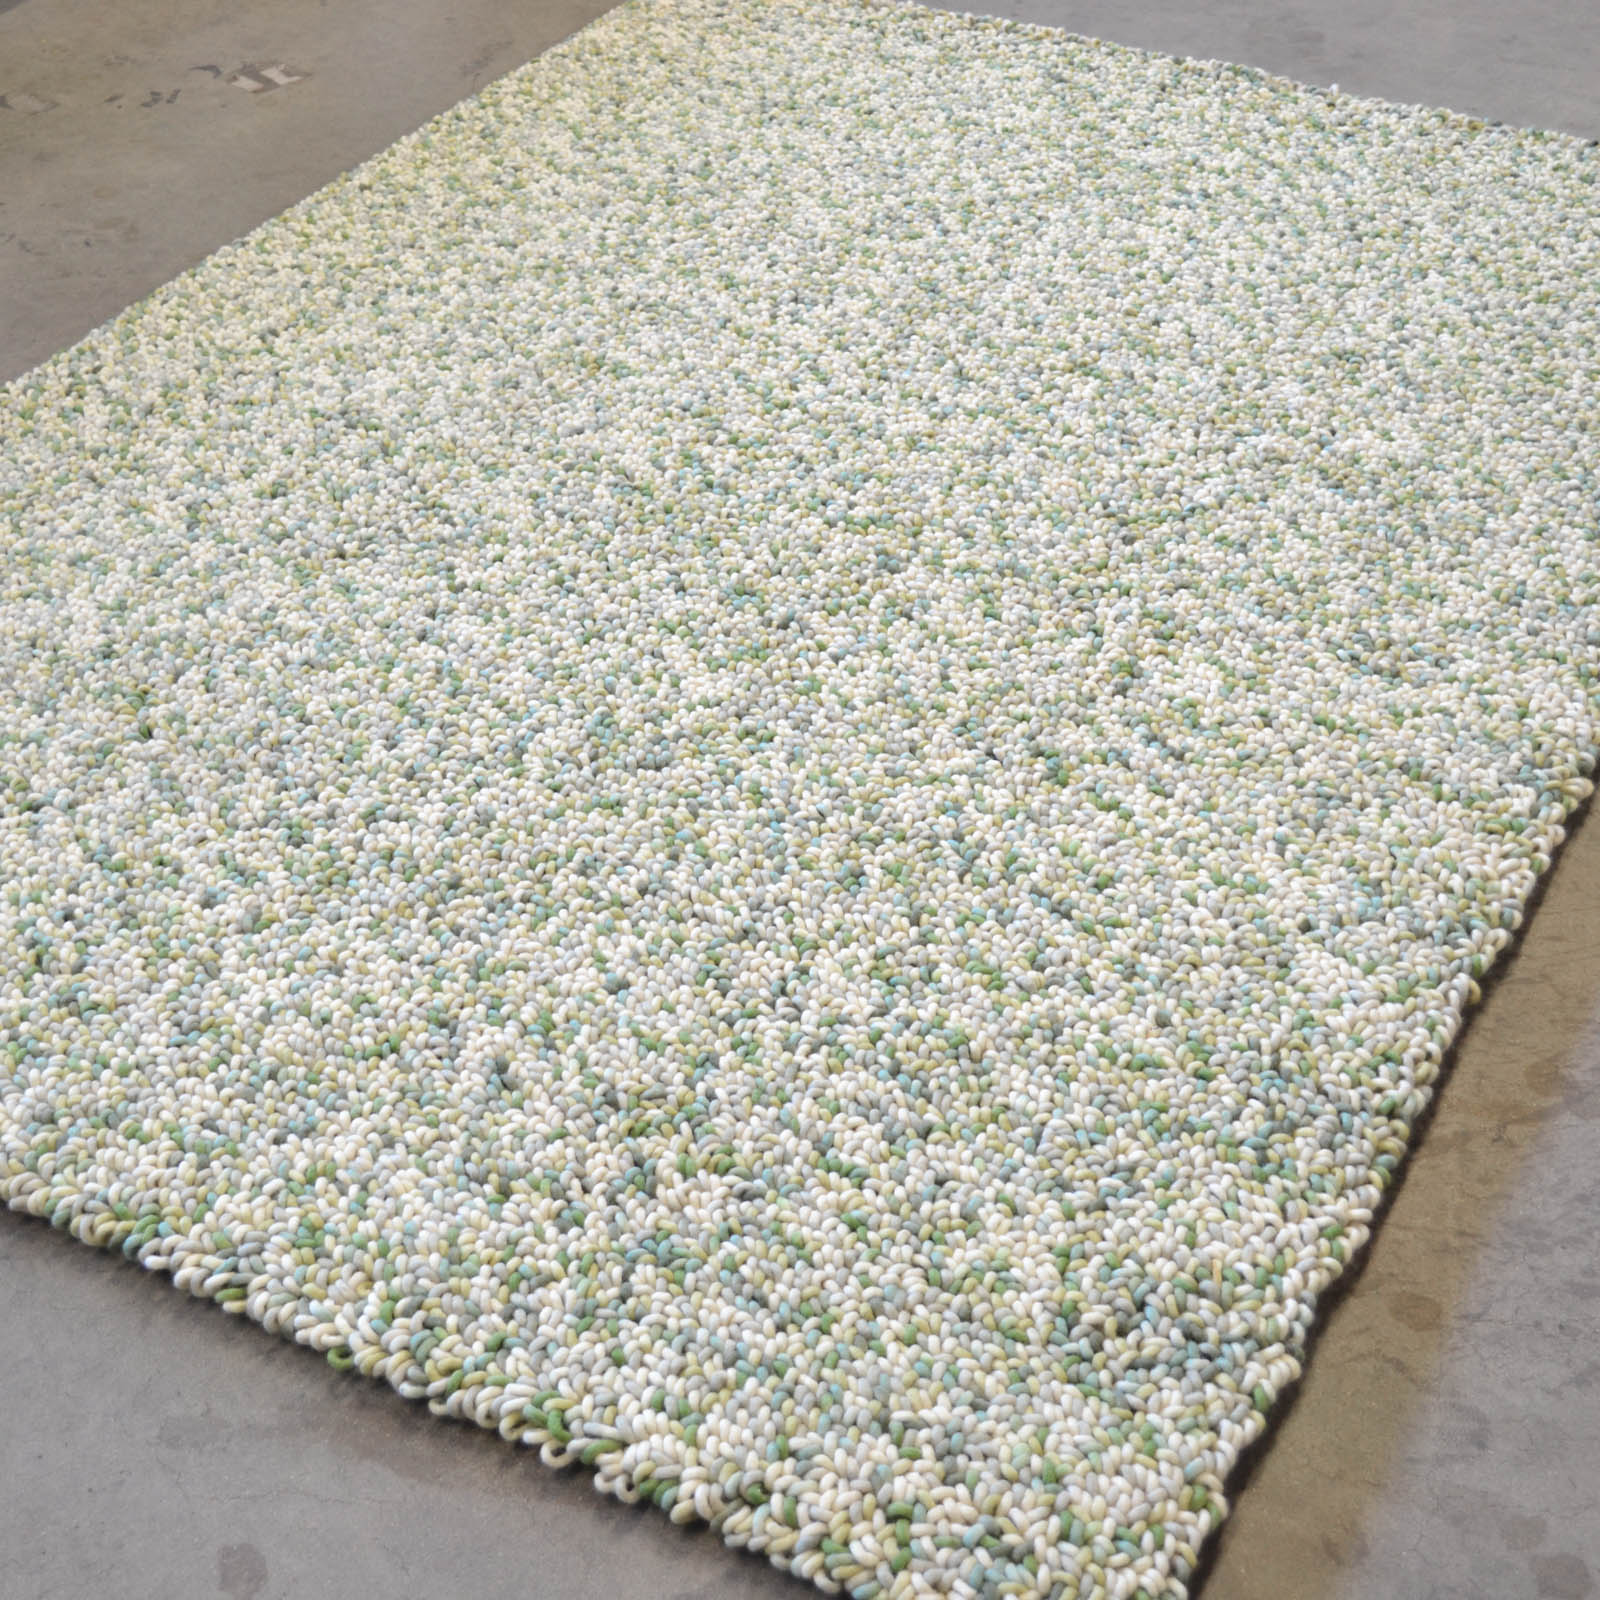 Stone Rugs 18817 Ivory Green by Brink and Campman